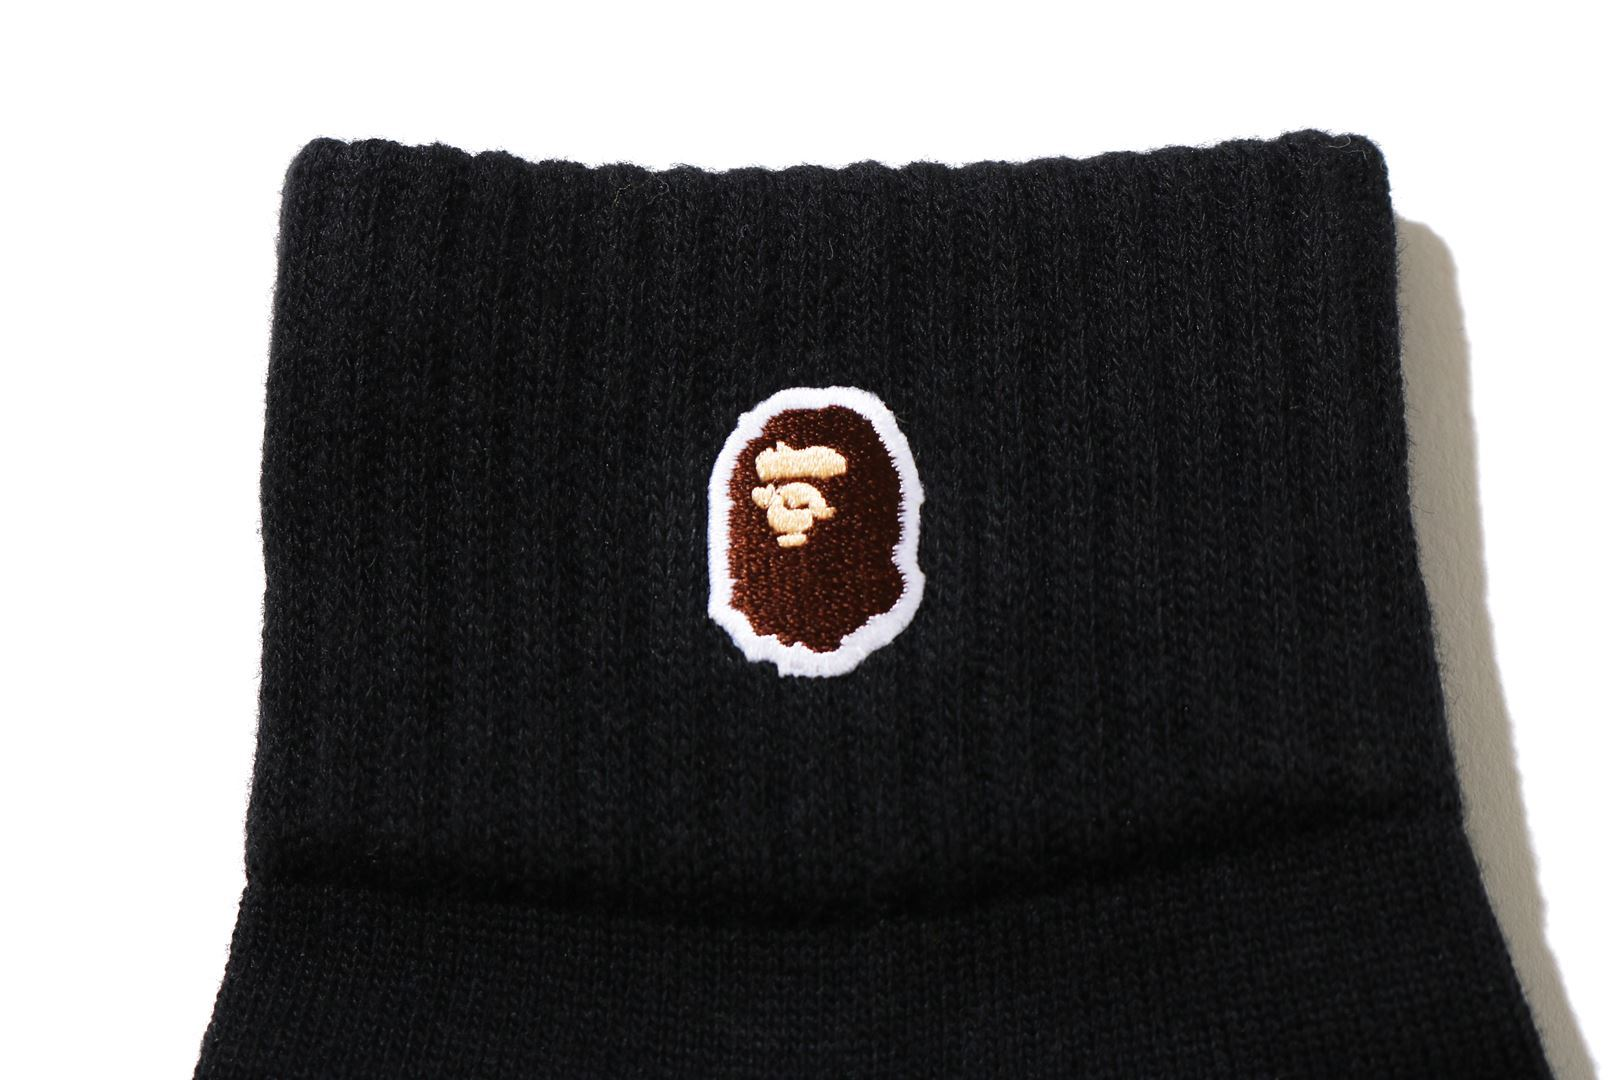 APE HEAD ONE POINT ANKLE SOCKS_a0174495_11550233.jpg